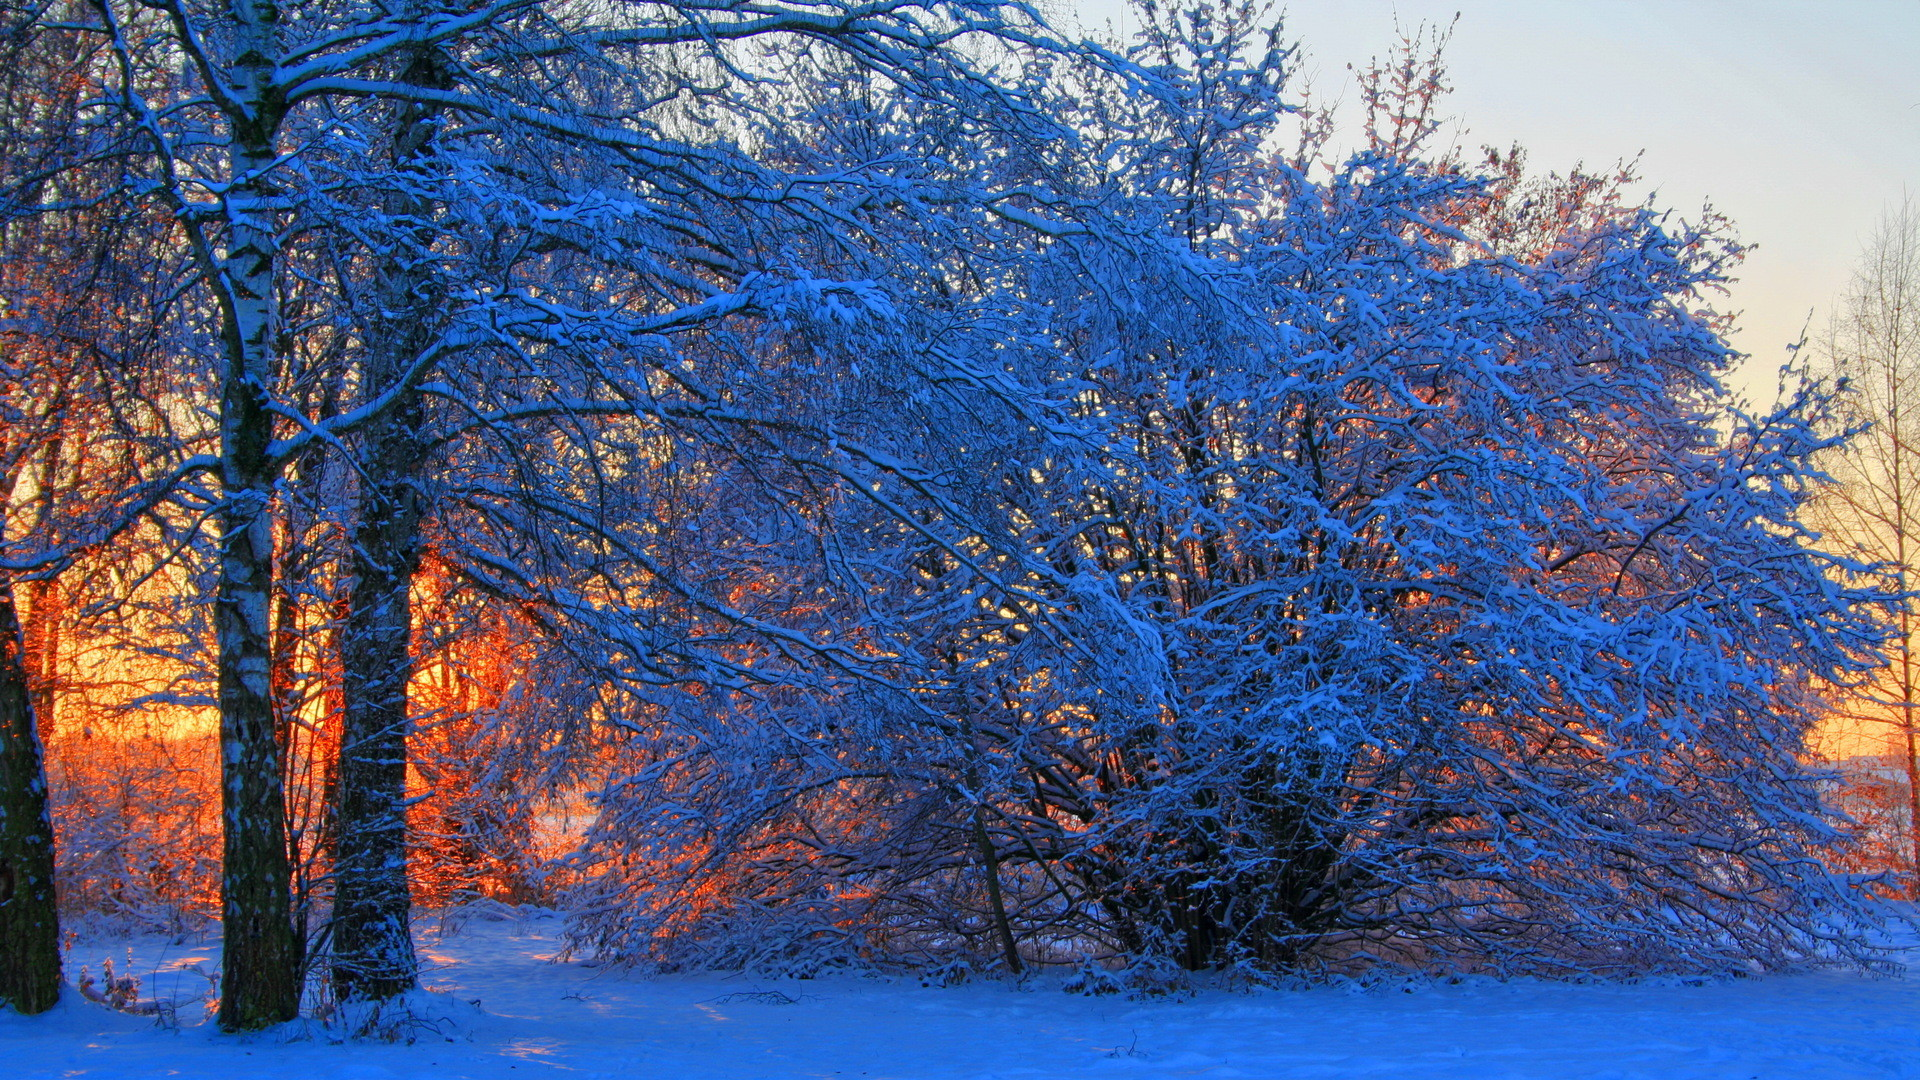 0 Winter Wallpapers Full HD Group Winter Wallpapers High Quality Download  Free